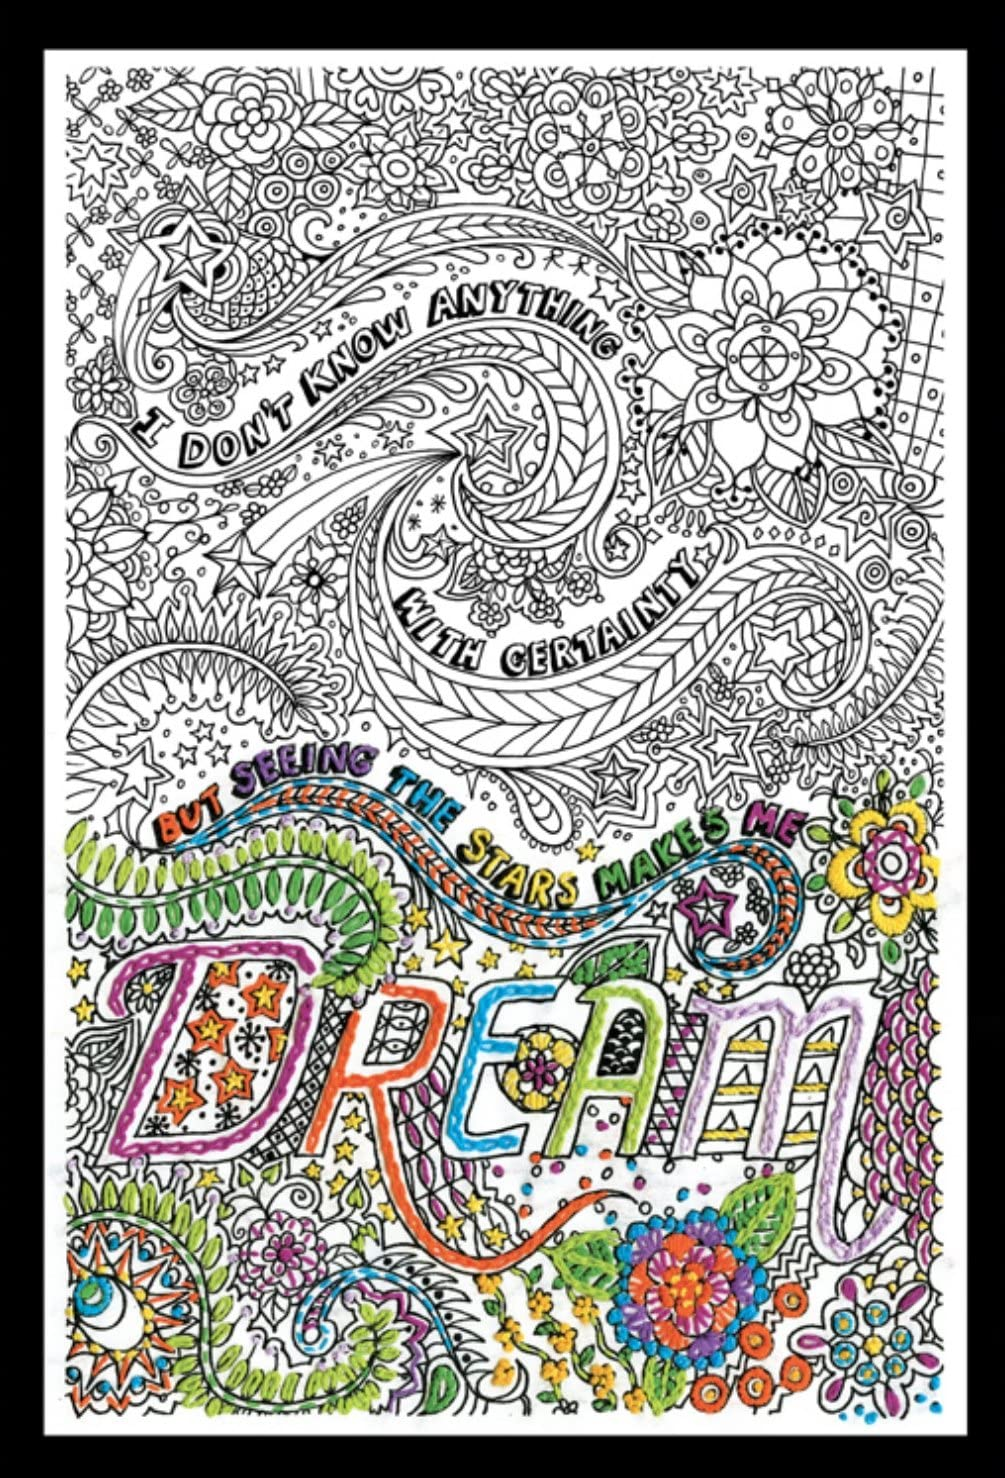 Dream Tobin 311799 Zenbroidery Stamped Embroidery 10X16